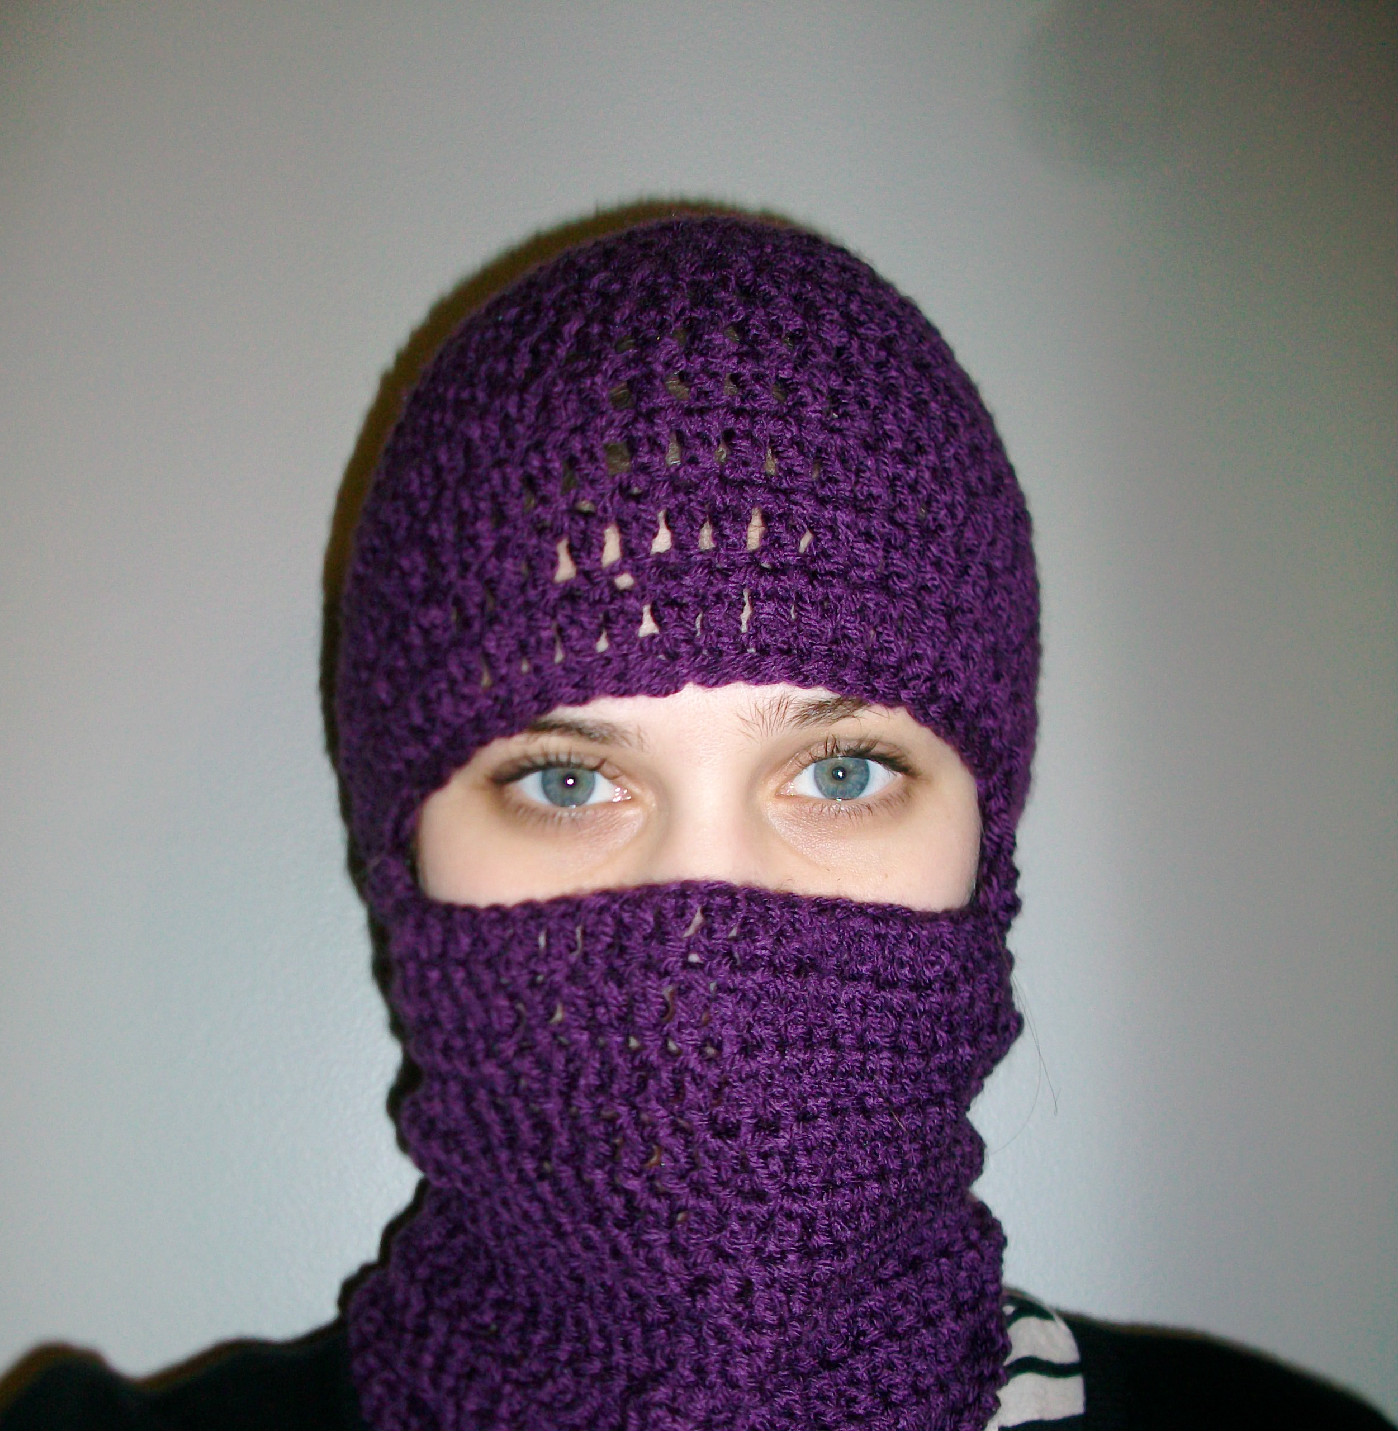 Enchanting Knitted Ski Mask Pattern Images - Blanket Knitting ...